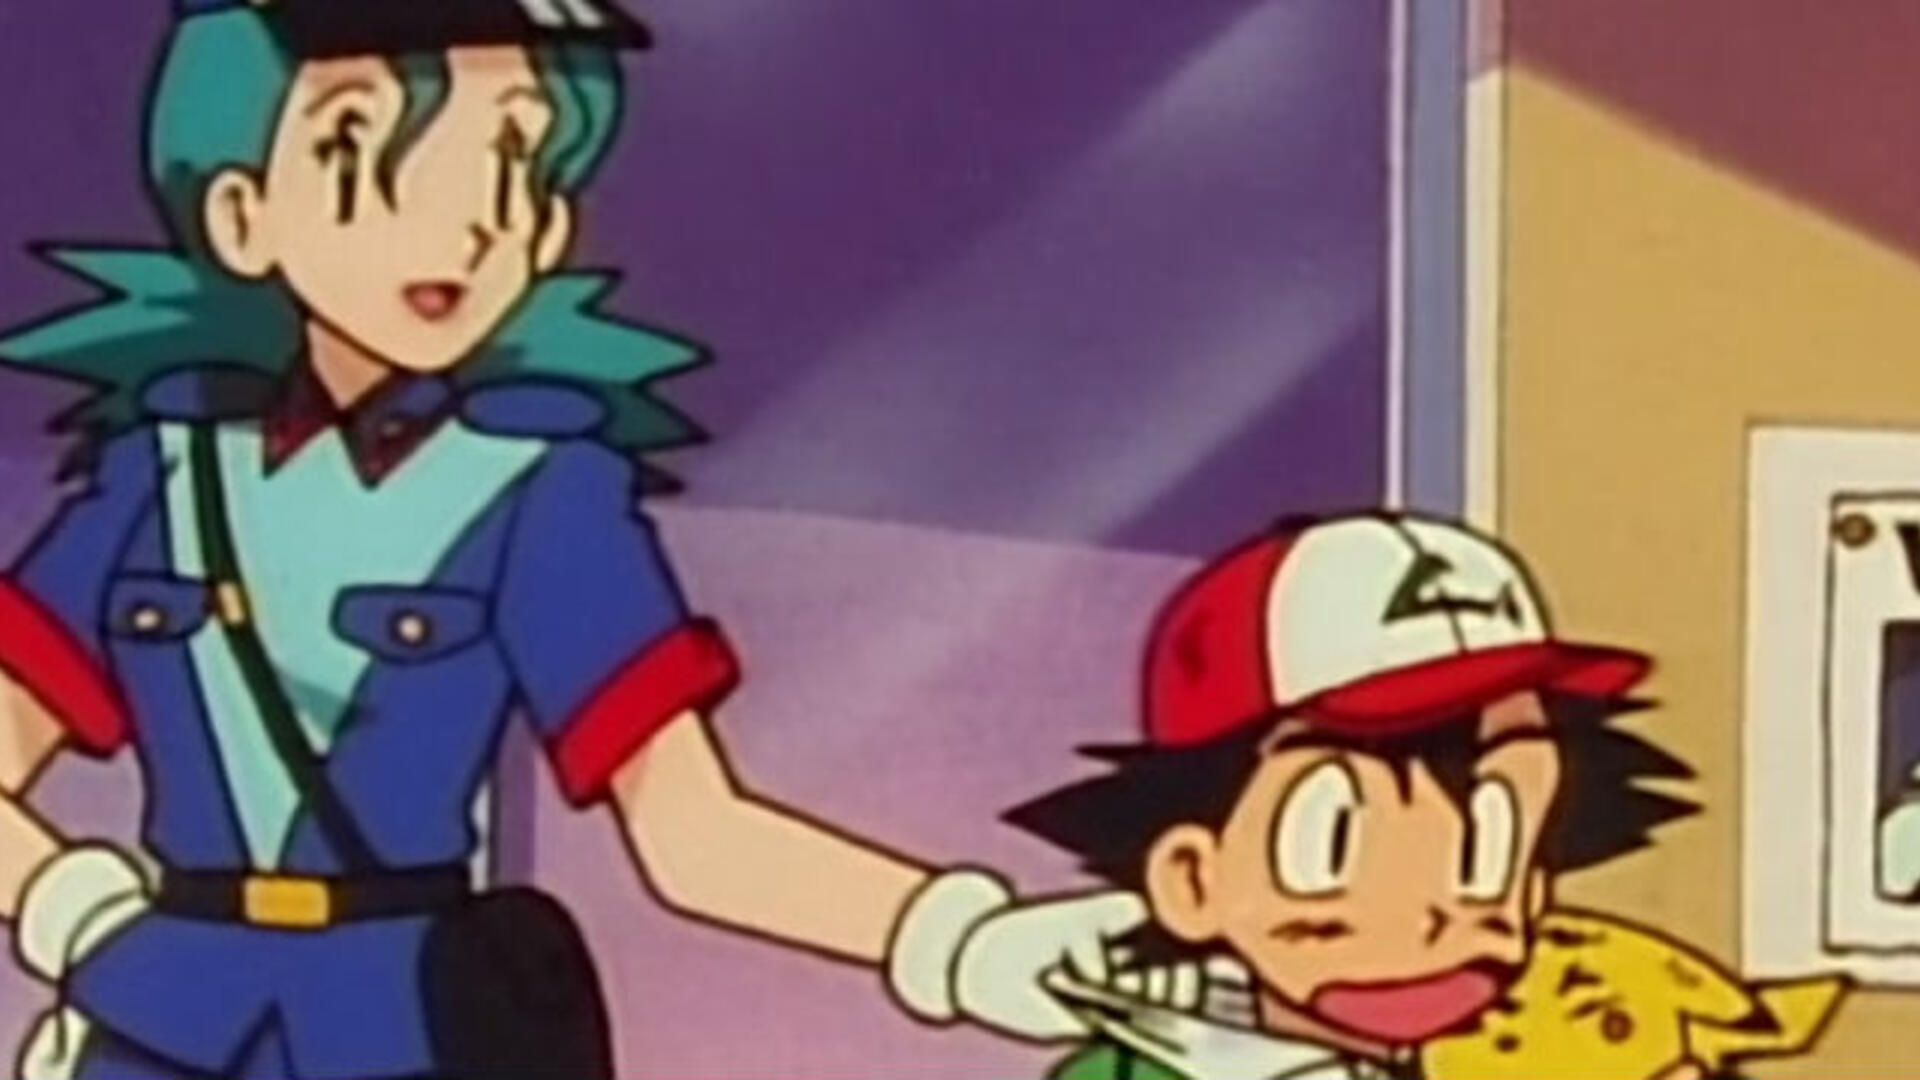 Japanese Man Arrested for Selling Cheat Modifications to Pokemon Go Plus Device